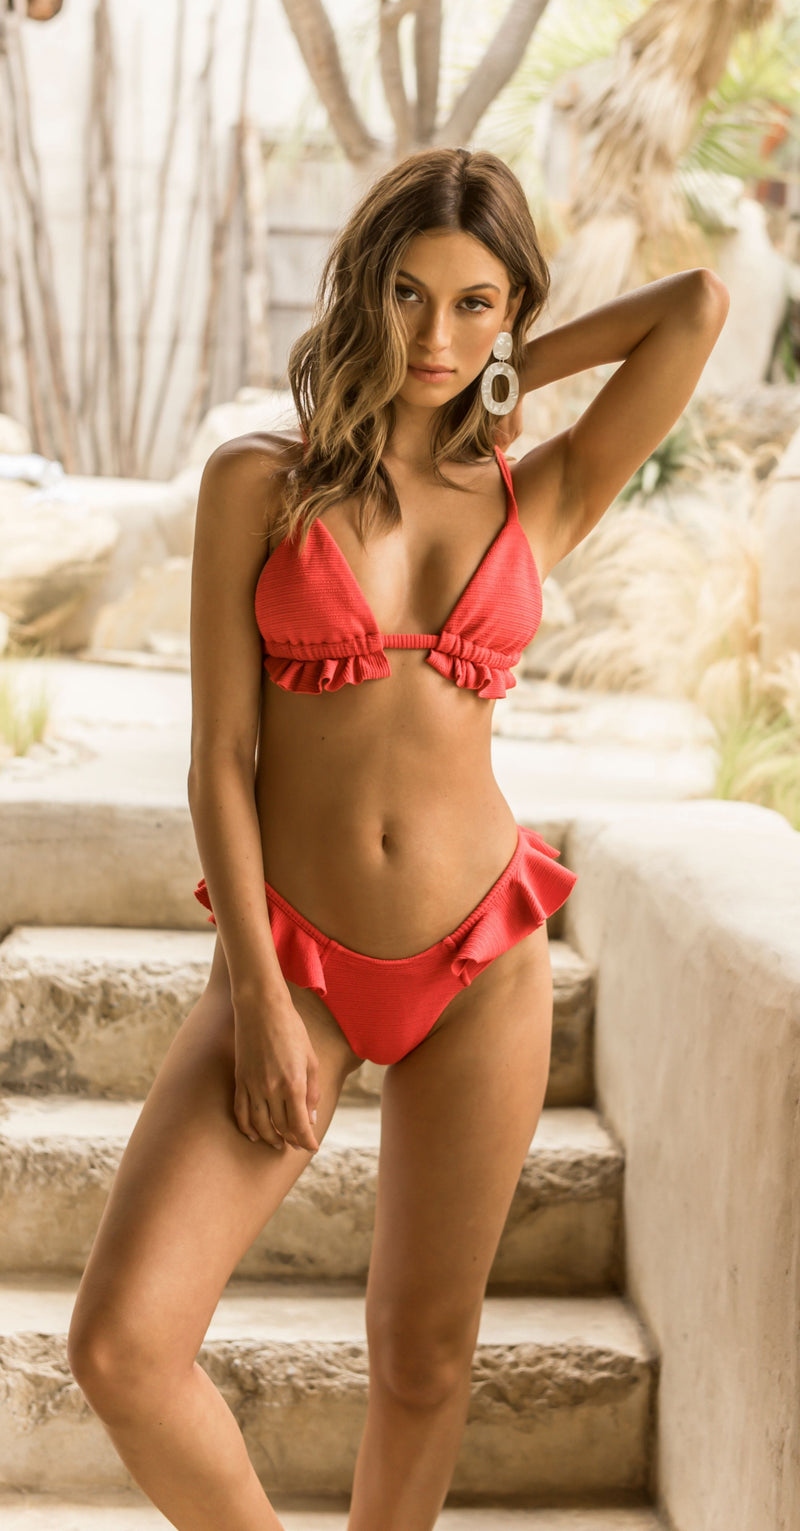 Crimson Micro Scrunch Ruffle Triangle Top x Ruffle Uno Bottom Bikini Set